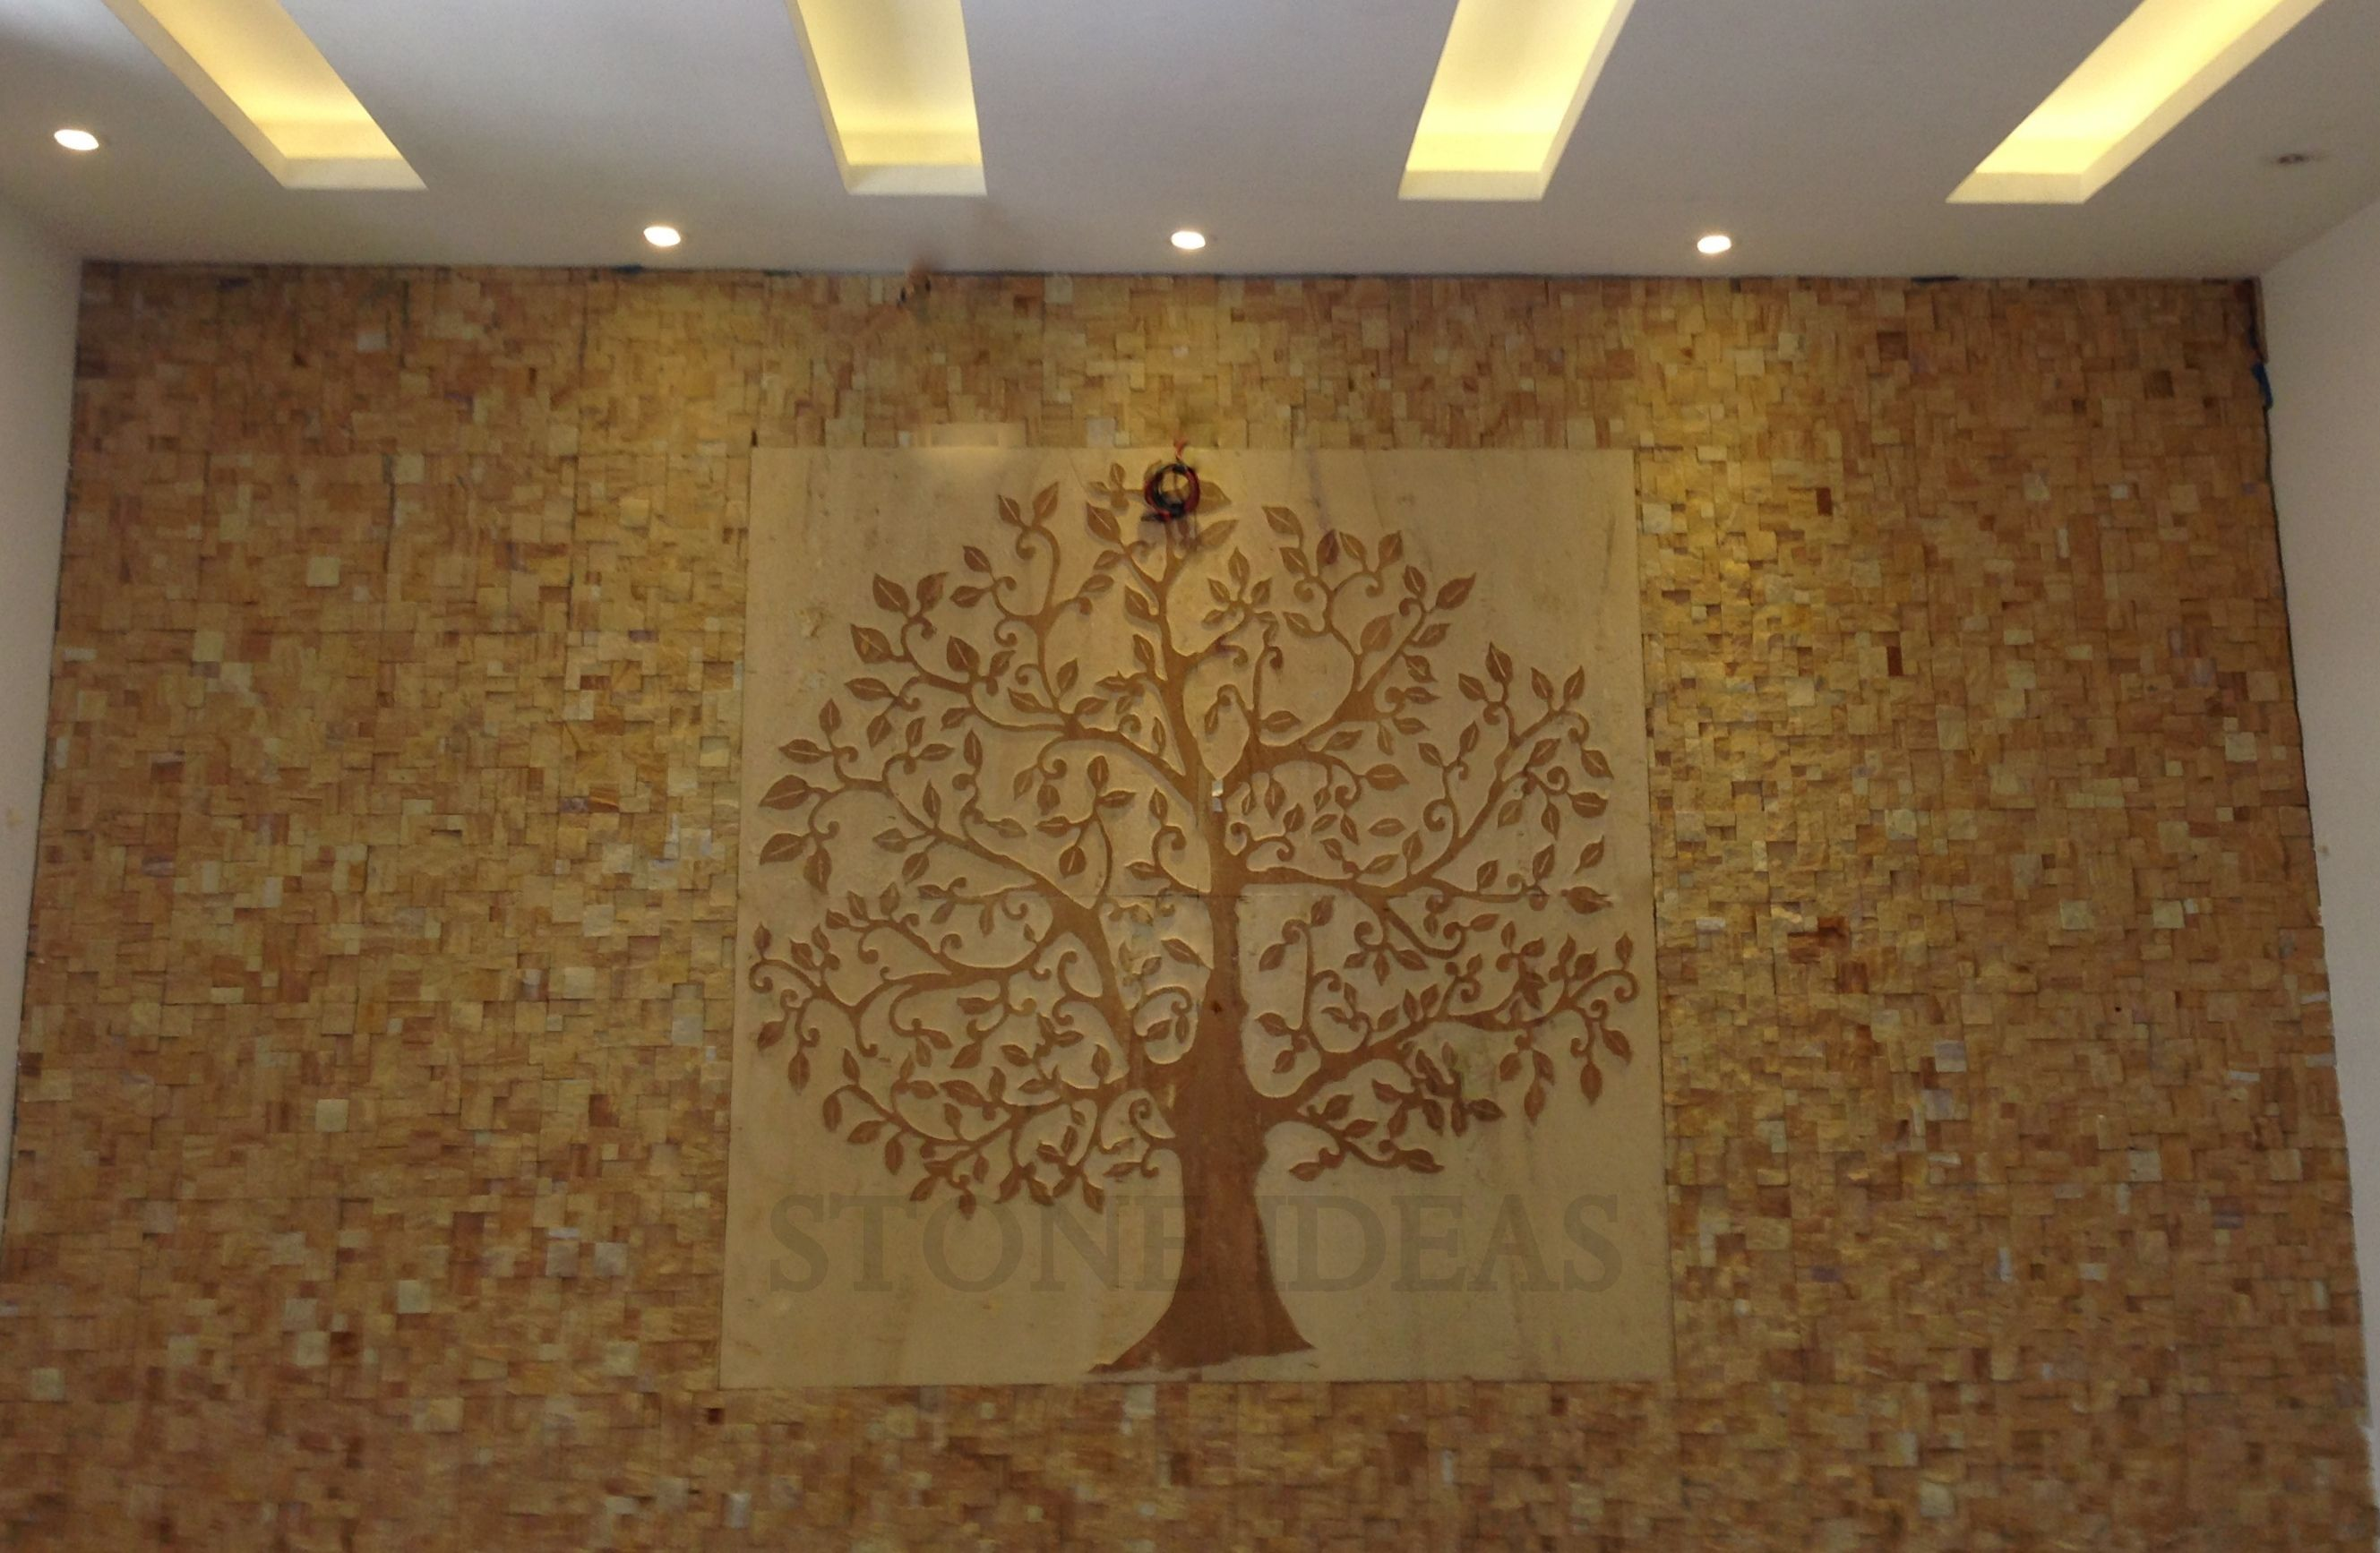 Beautiful Natural Stone Mural And Wall Cladding Used On Drawing Room Wall Wallcladding Naturalstone Stonemural Interiors Walls Design With Images Stone Wall Cladding